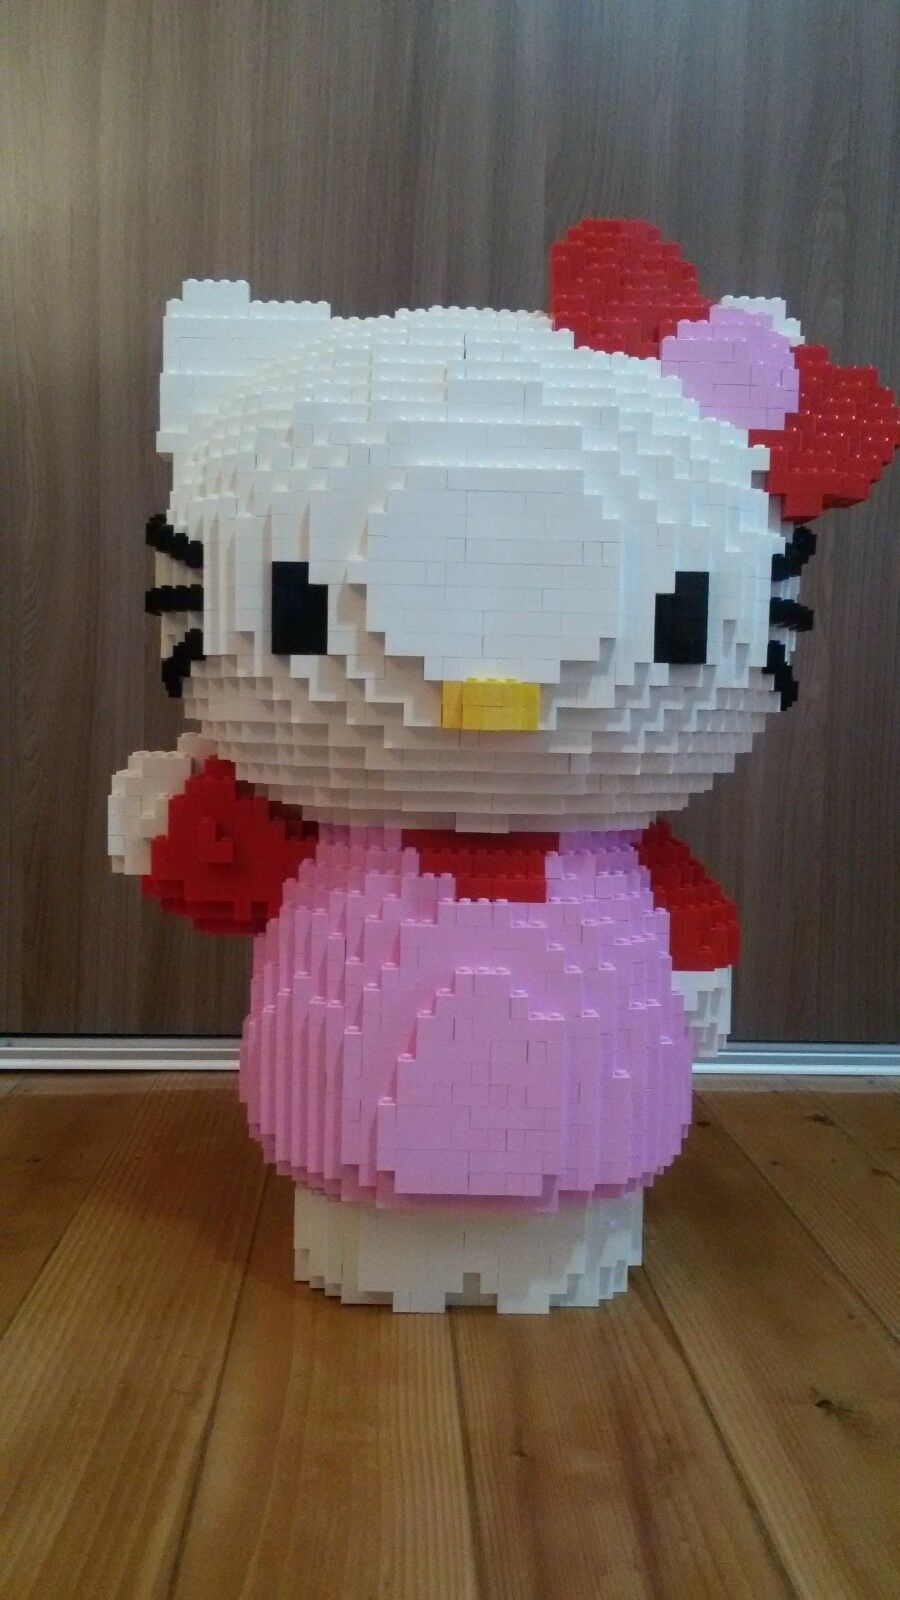 LEGO Hello Kitty statue building instruction